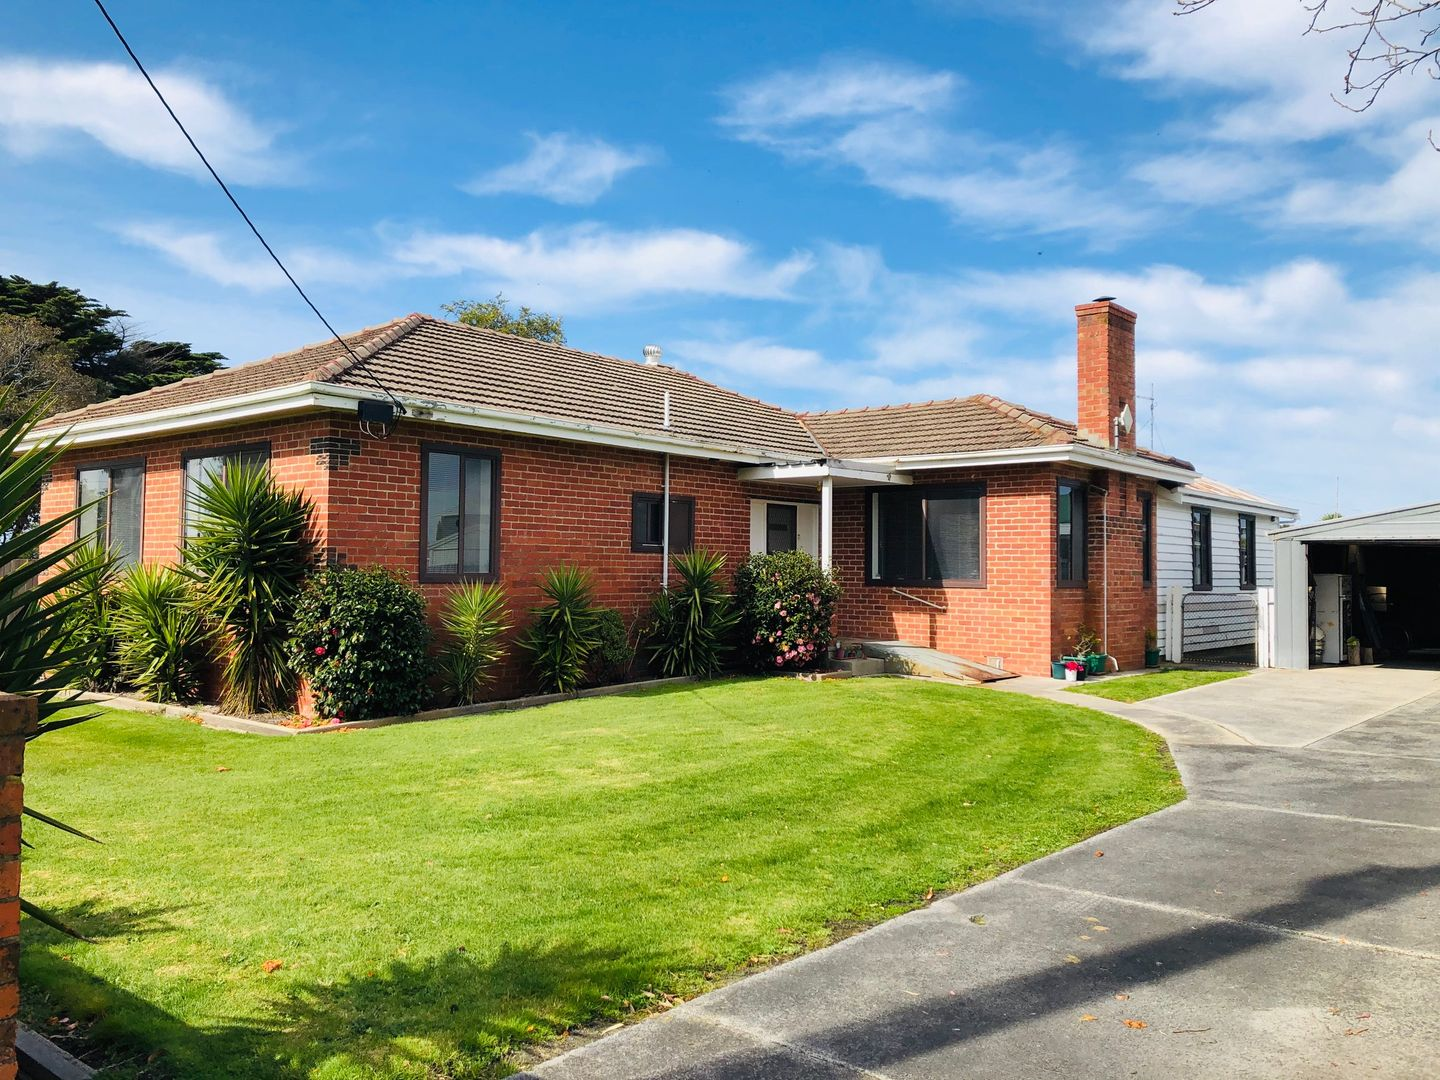 96 Townsend St, Port Welshpool VIC 3965, Image 0